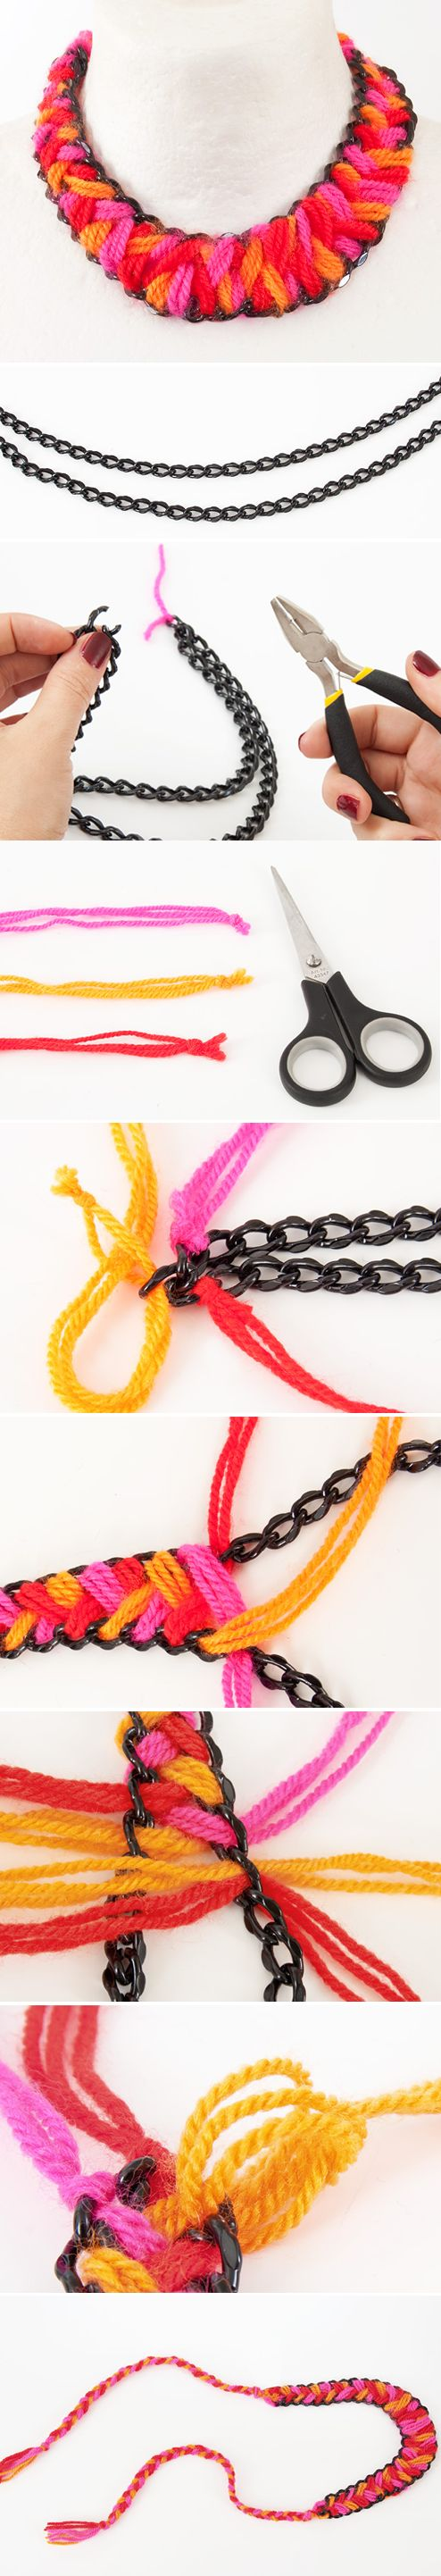 Collar brazalete lana color DIY Tutorial facil moderno alegre Wool Necklace Tutorial - or a bracelet